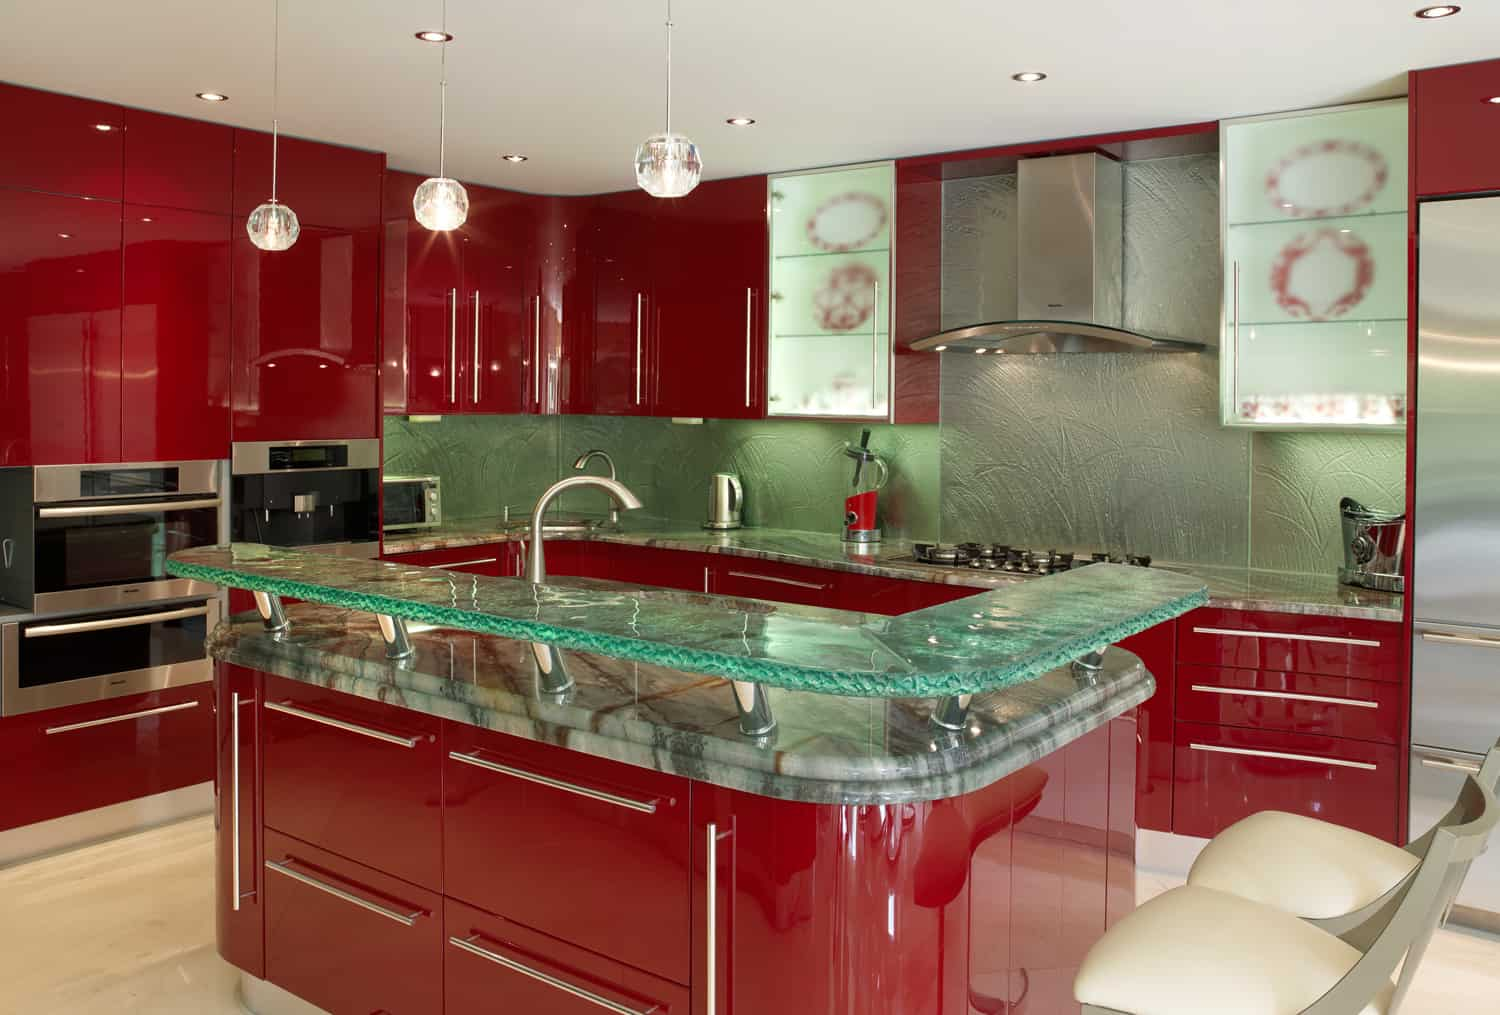 Modern kitchen countertops from unusual materials 30 ideas Kitchen profile glass design